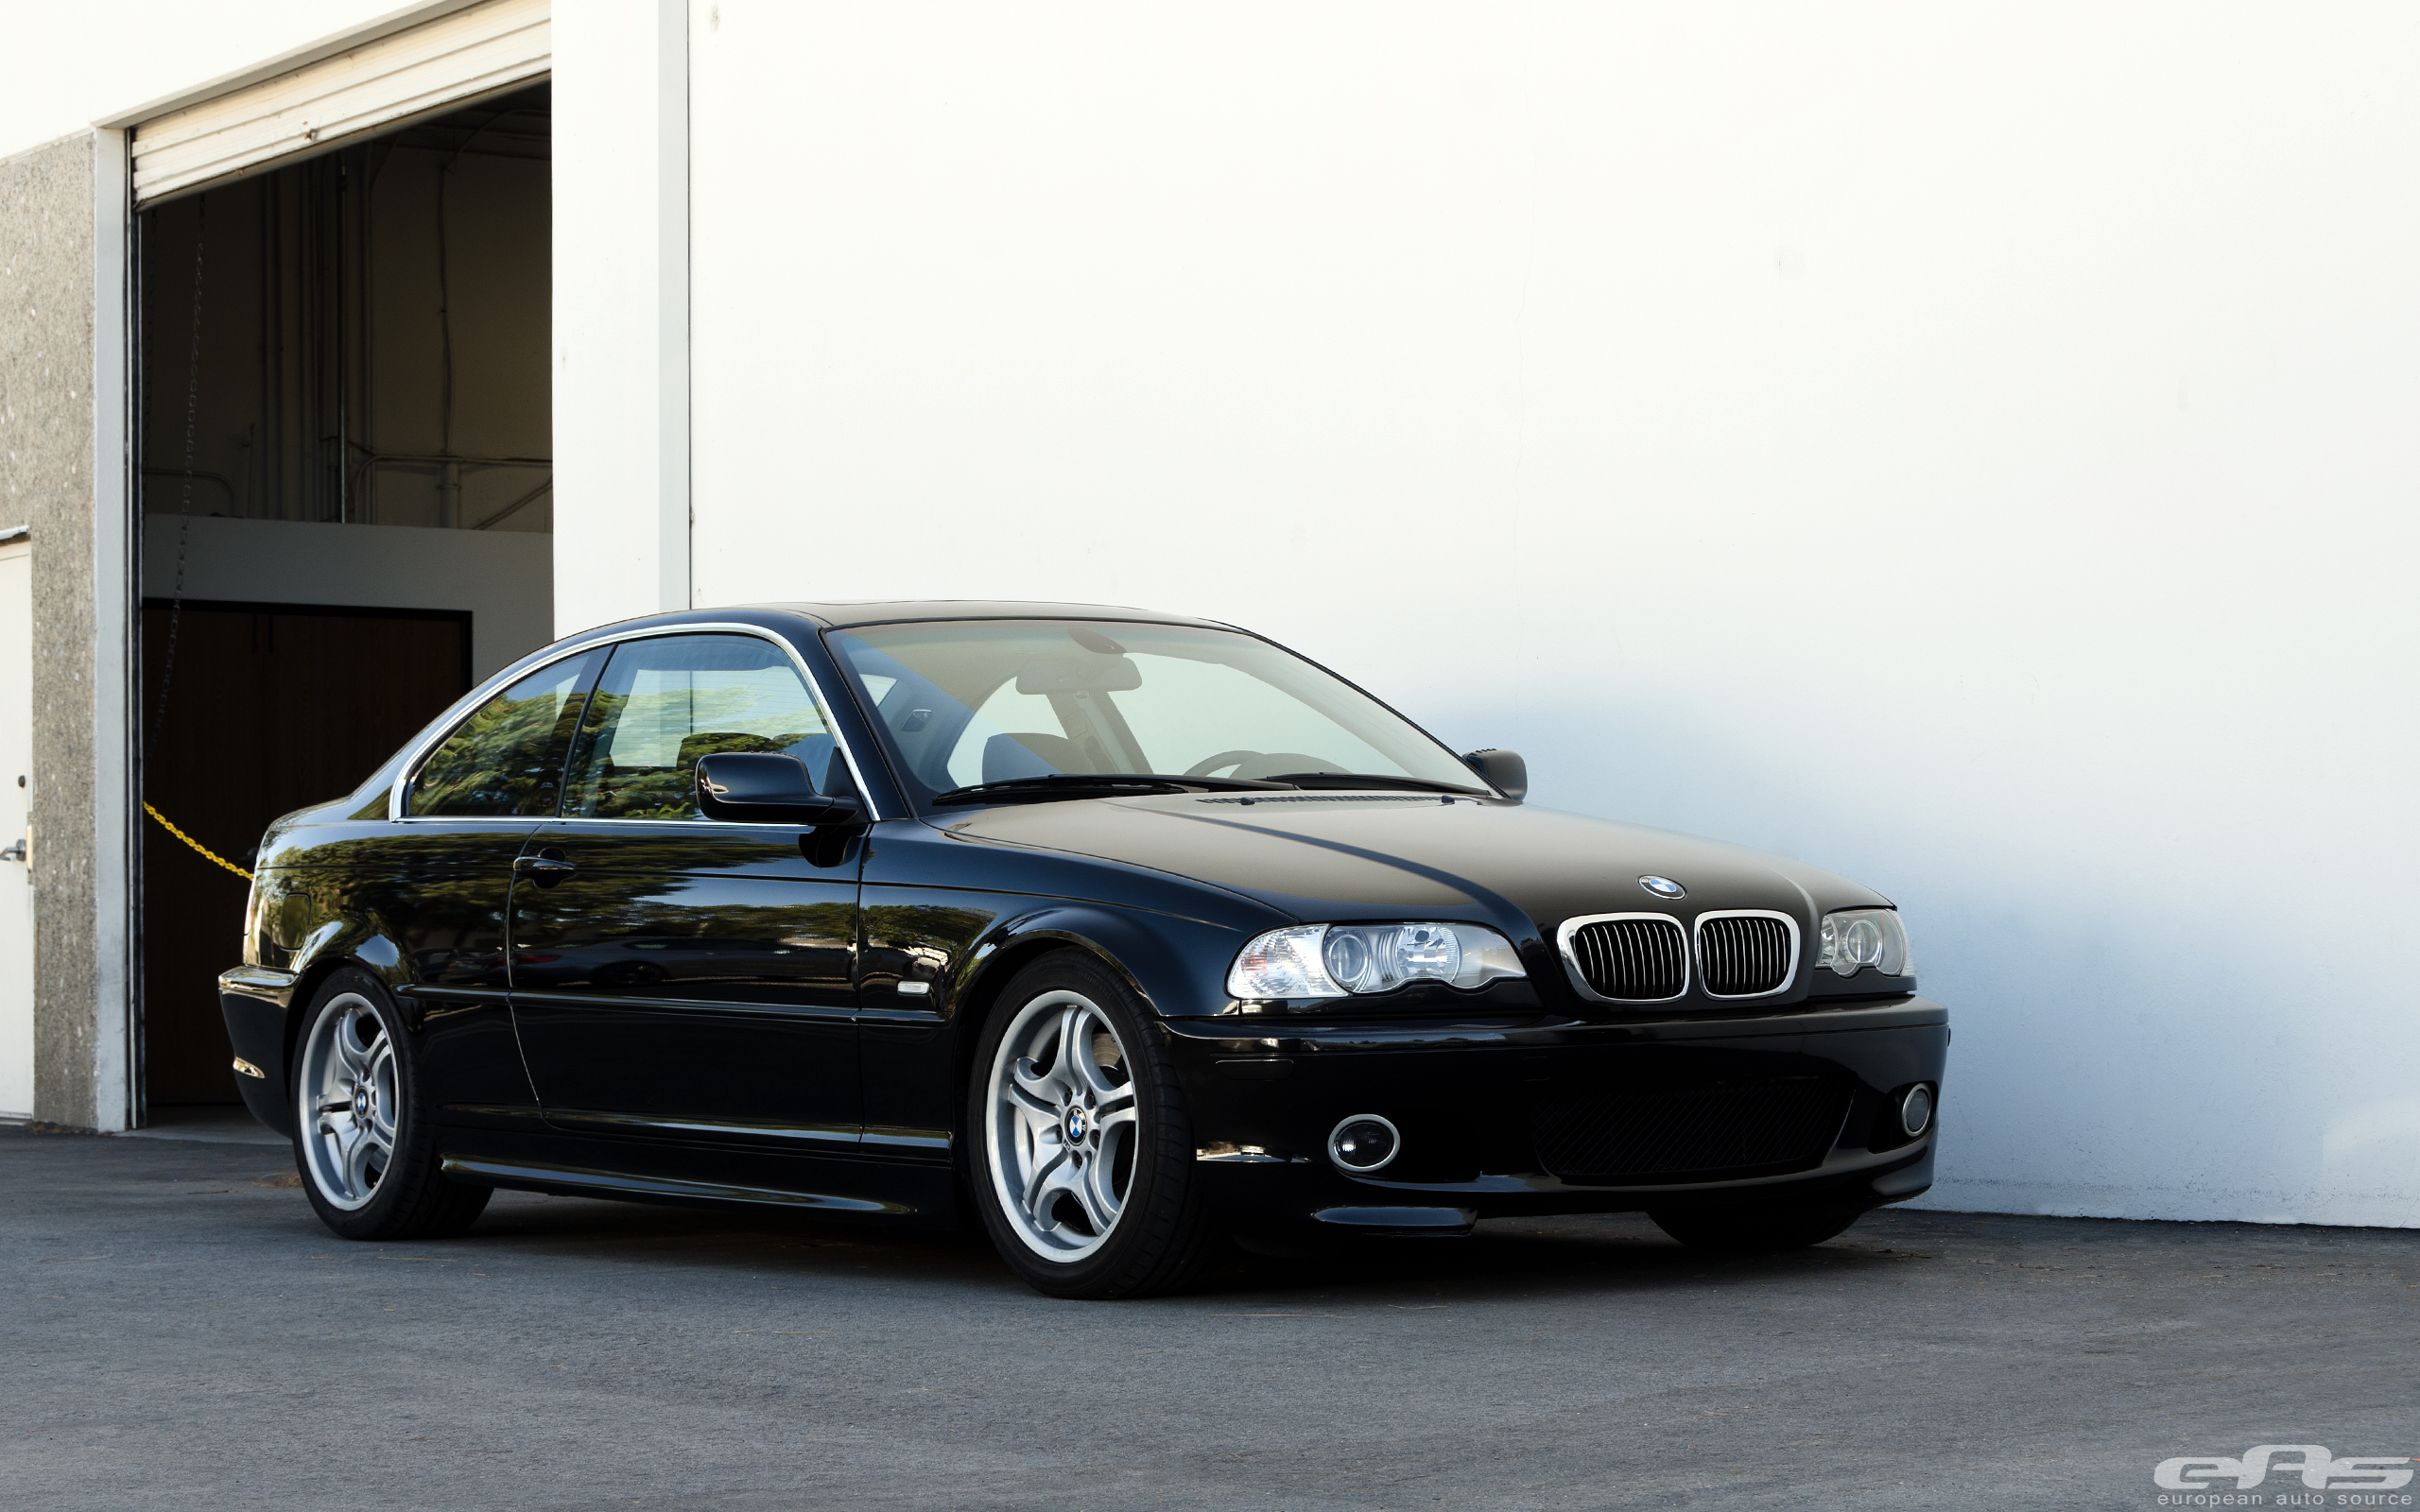 Interlagos Blue E46 M3 >> E46 330Ci Lowered on ST Coilovers | BMW Performance Parts & Services